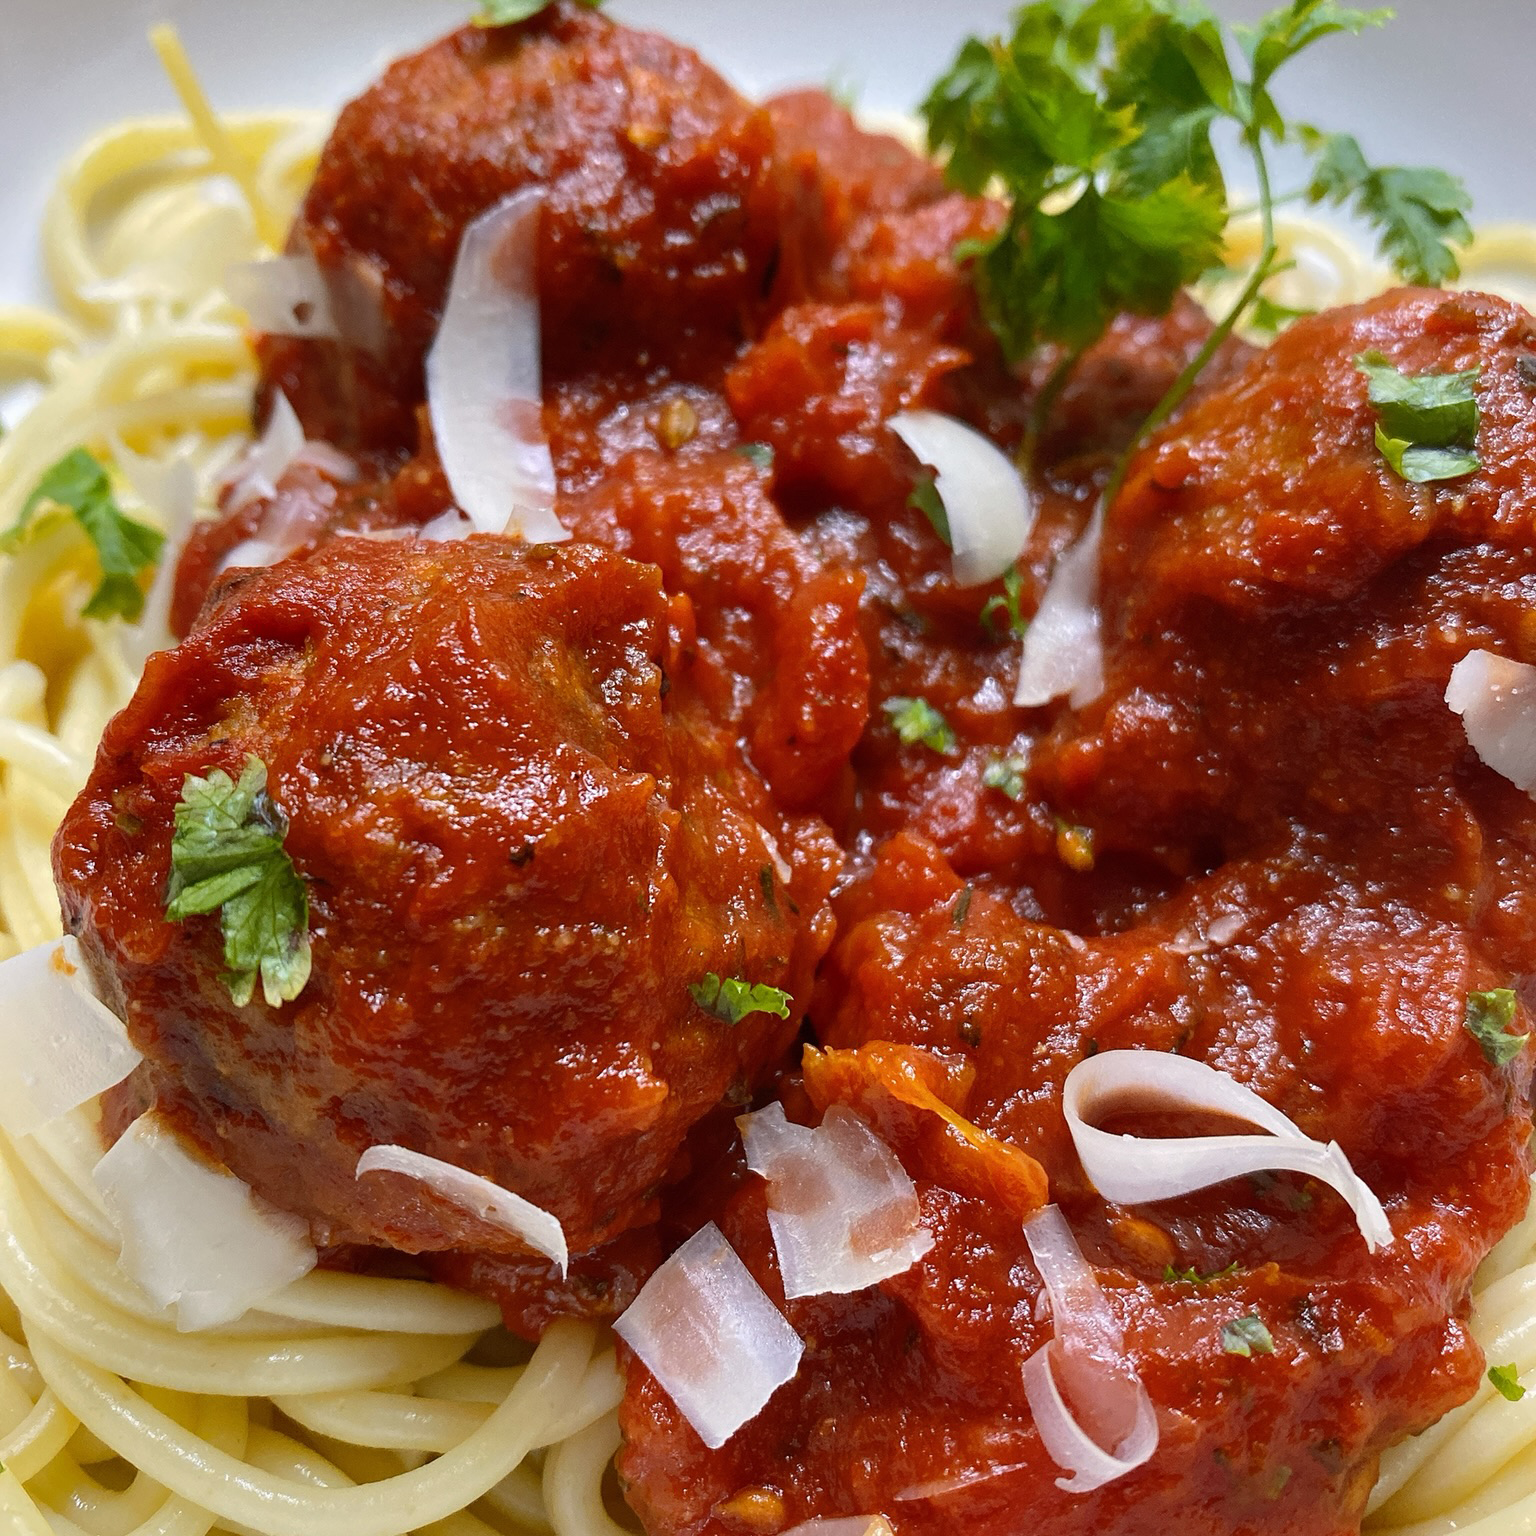 Spaghetti and Meatless Meatballs